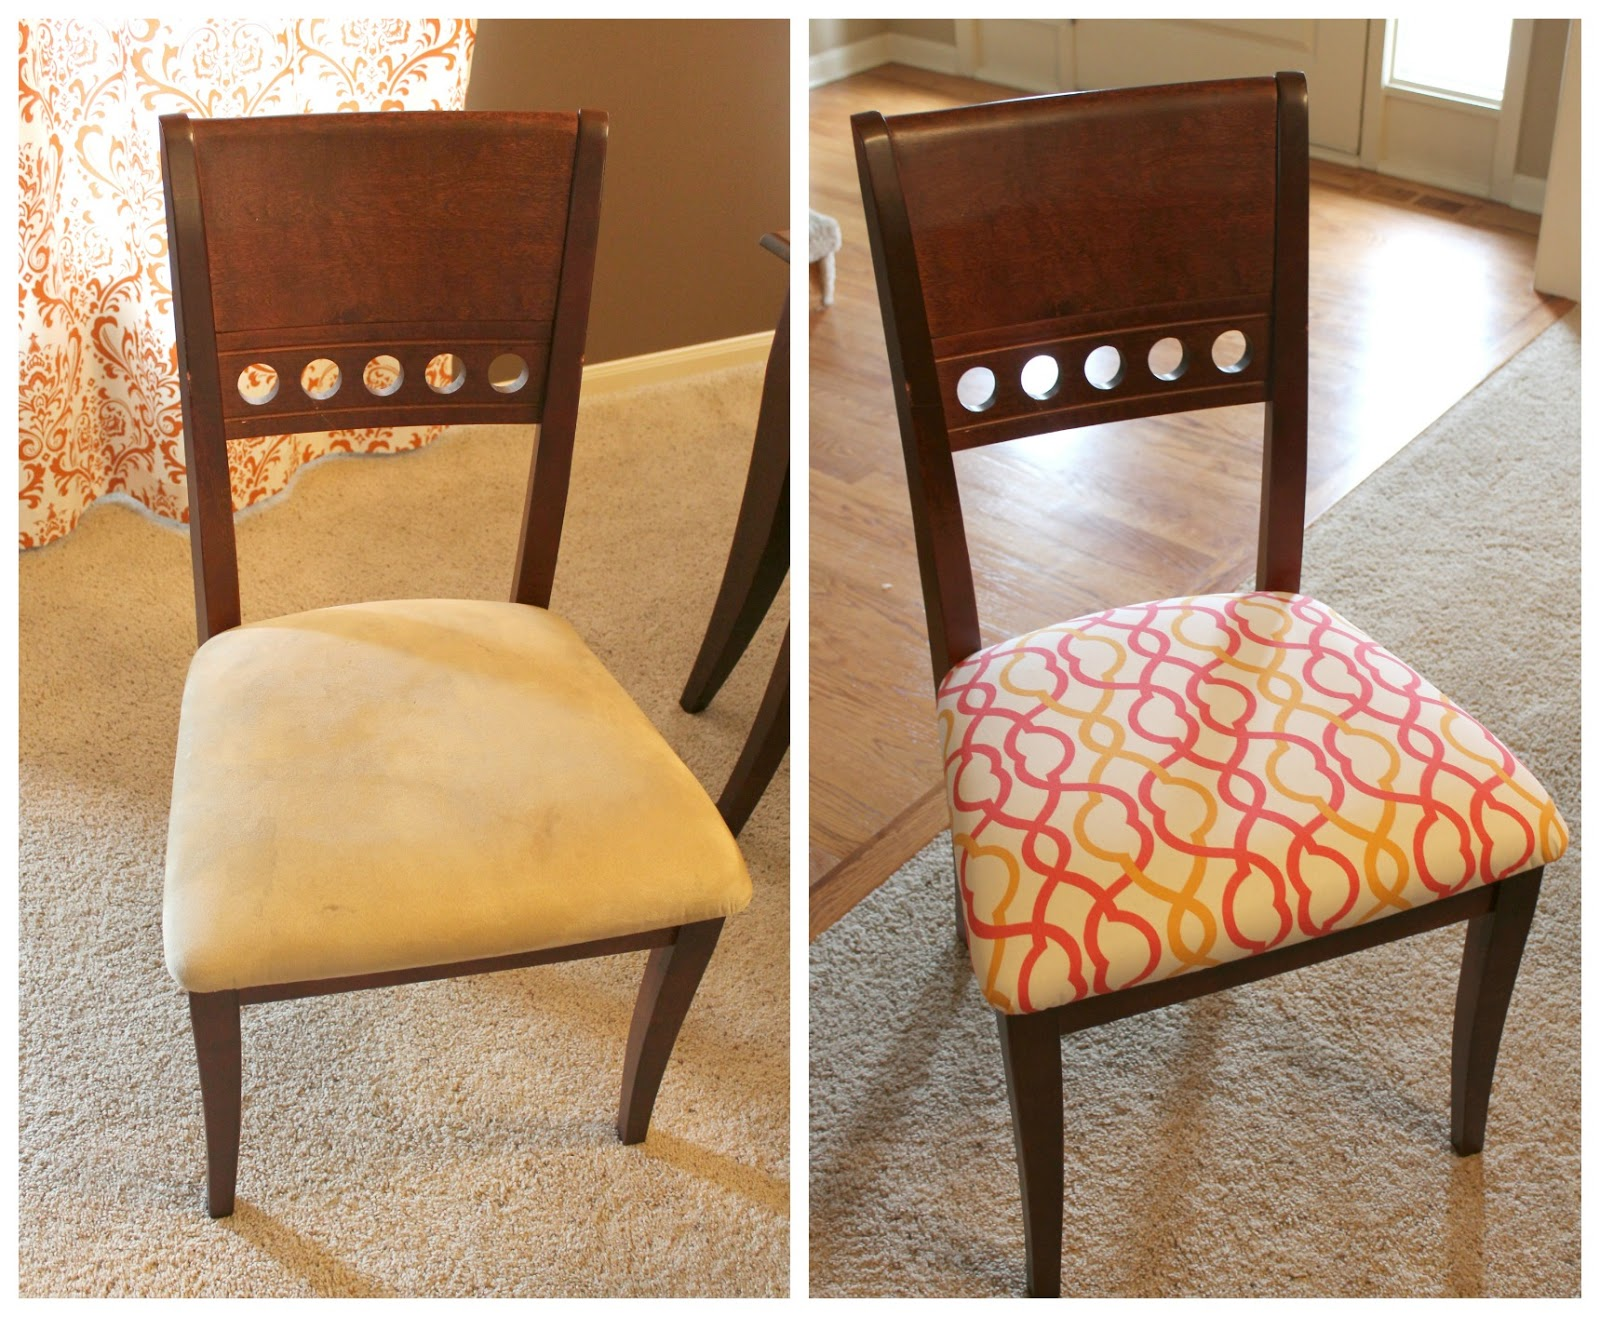 How to reupholster dining room chairs. How to reupholster dining room chairs   large and beautiful photos